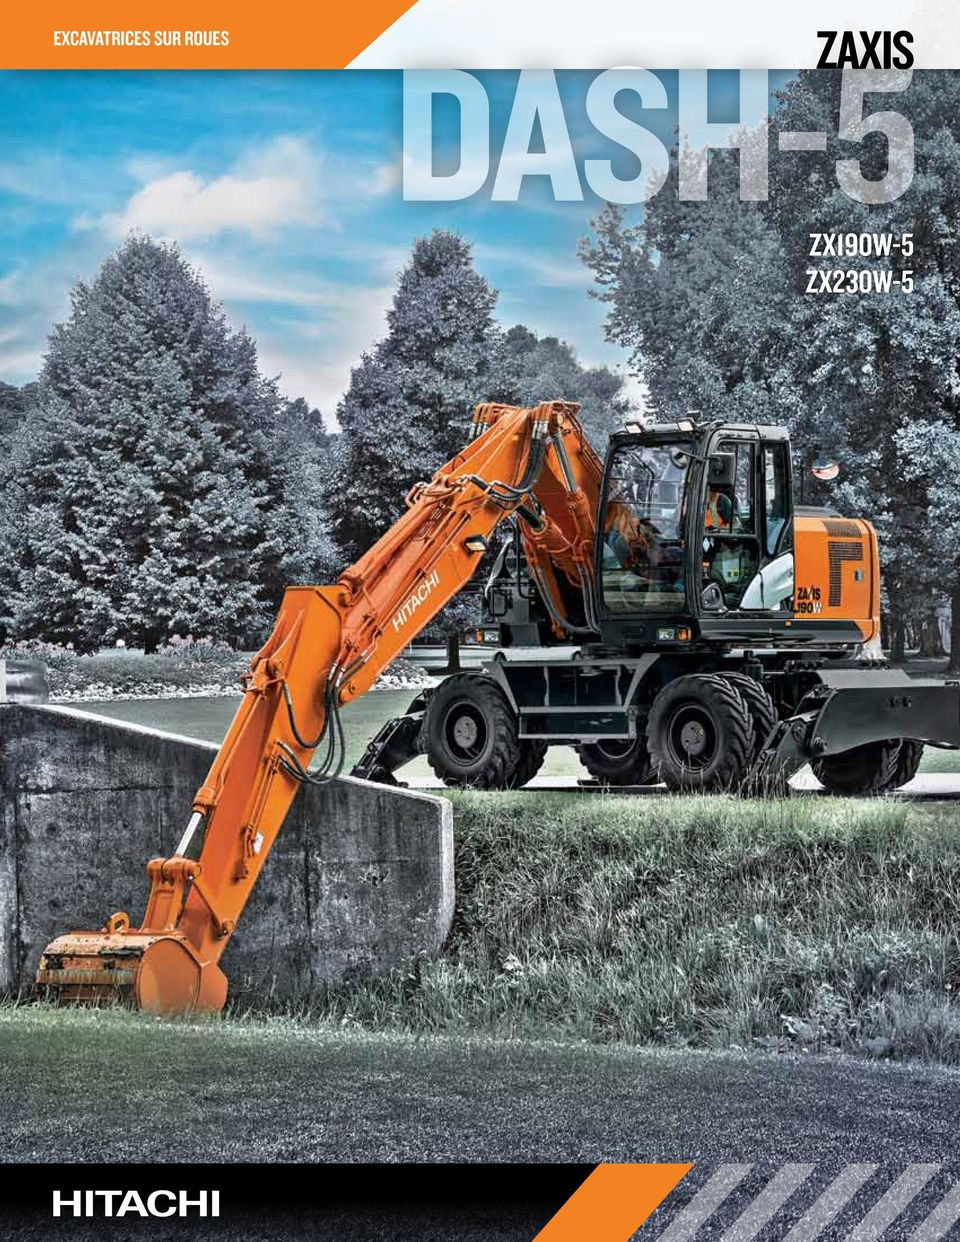 DASH-5 ZAXIS